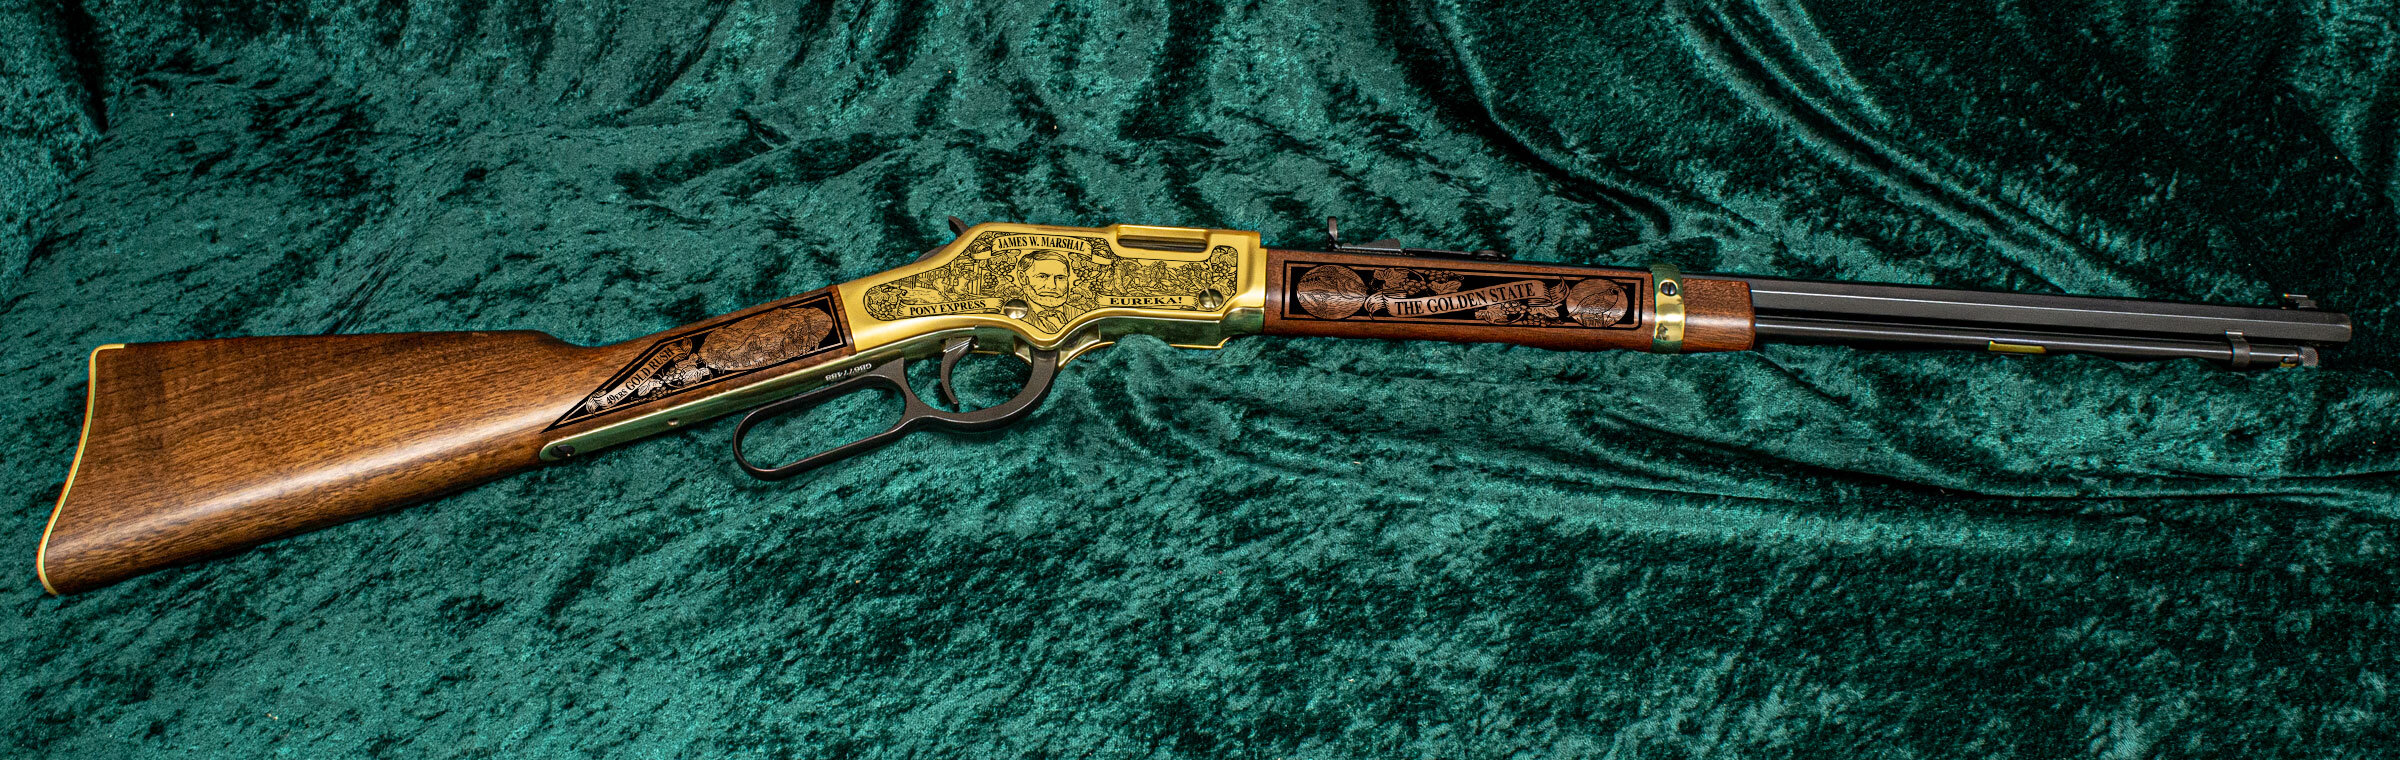 Right-side of the California Henry Golden Boy Rifle